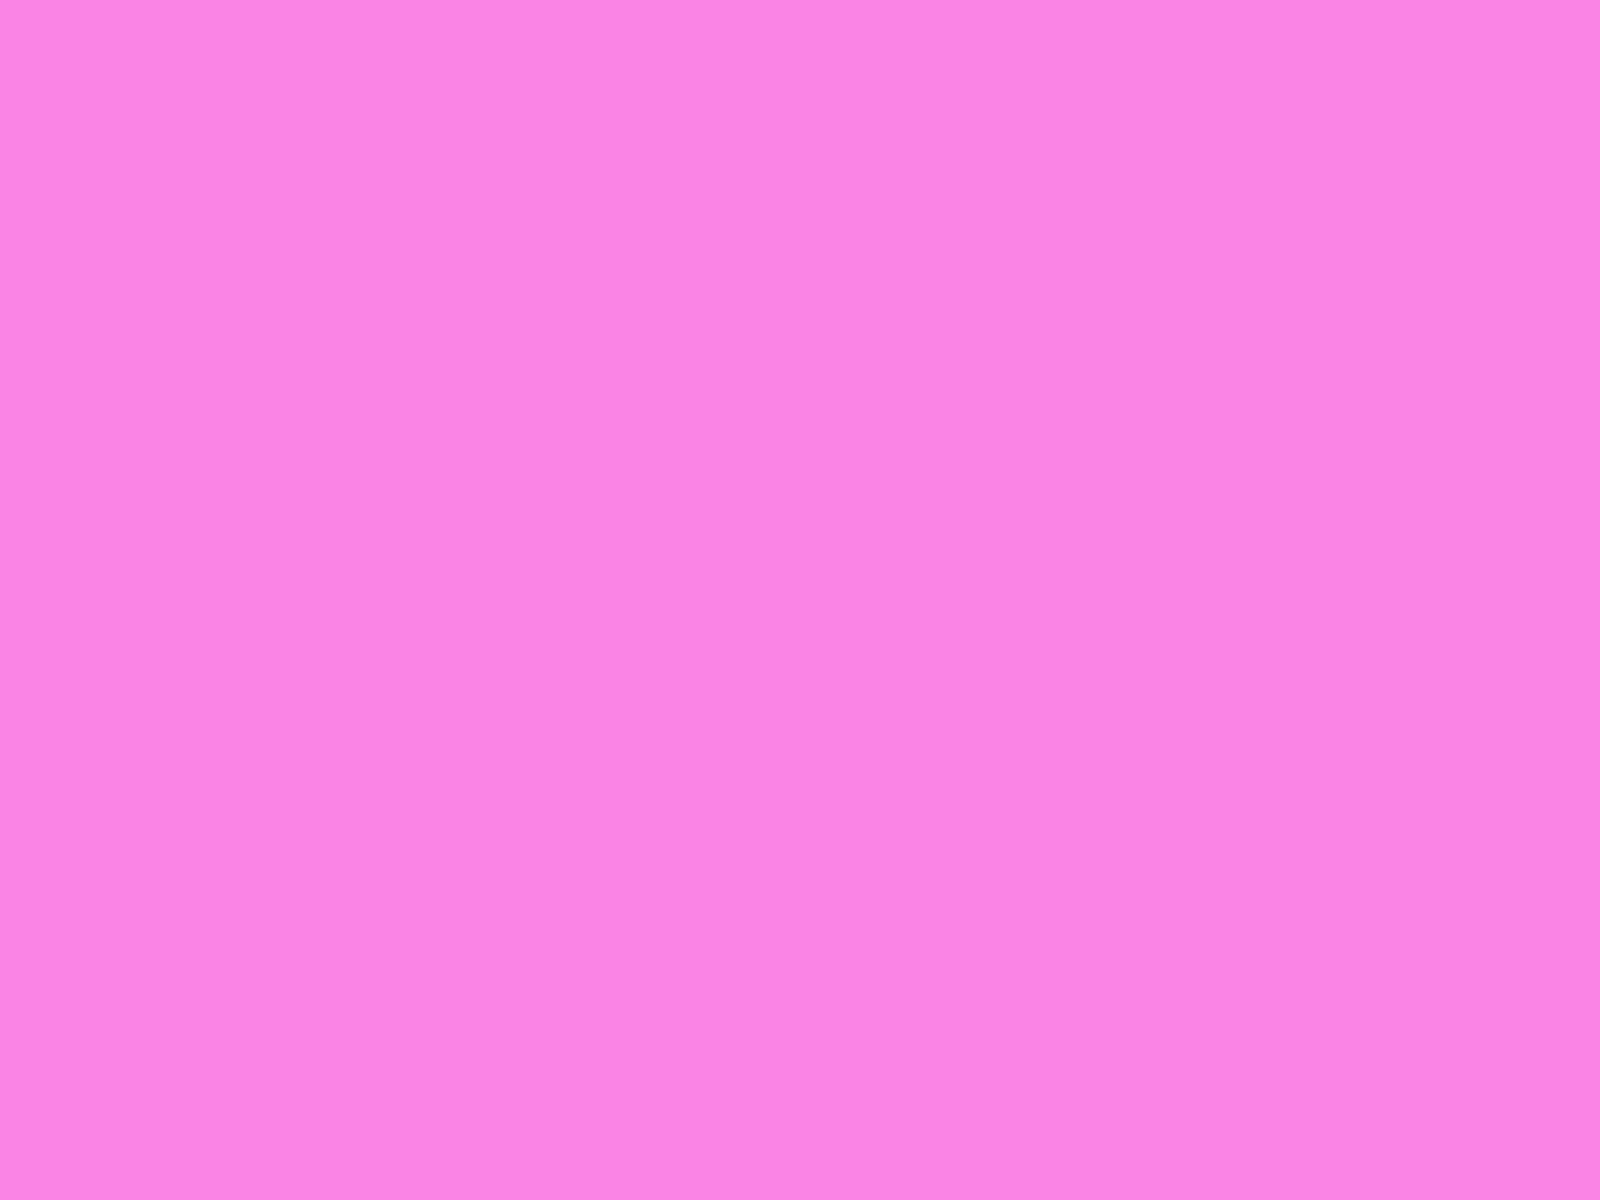 1600x1200 Pale Magenta Solid Color Background